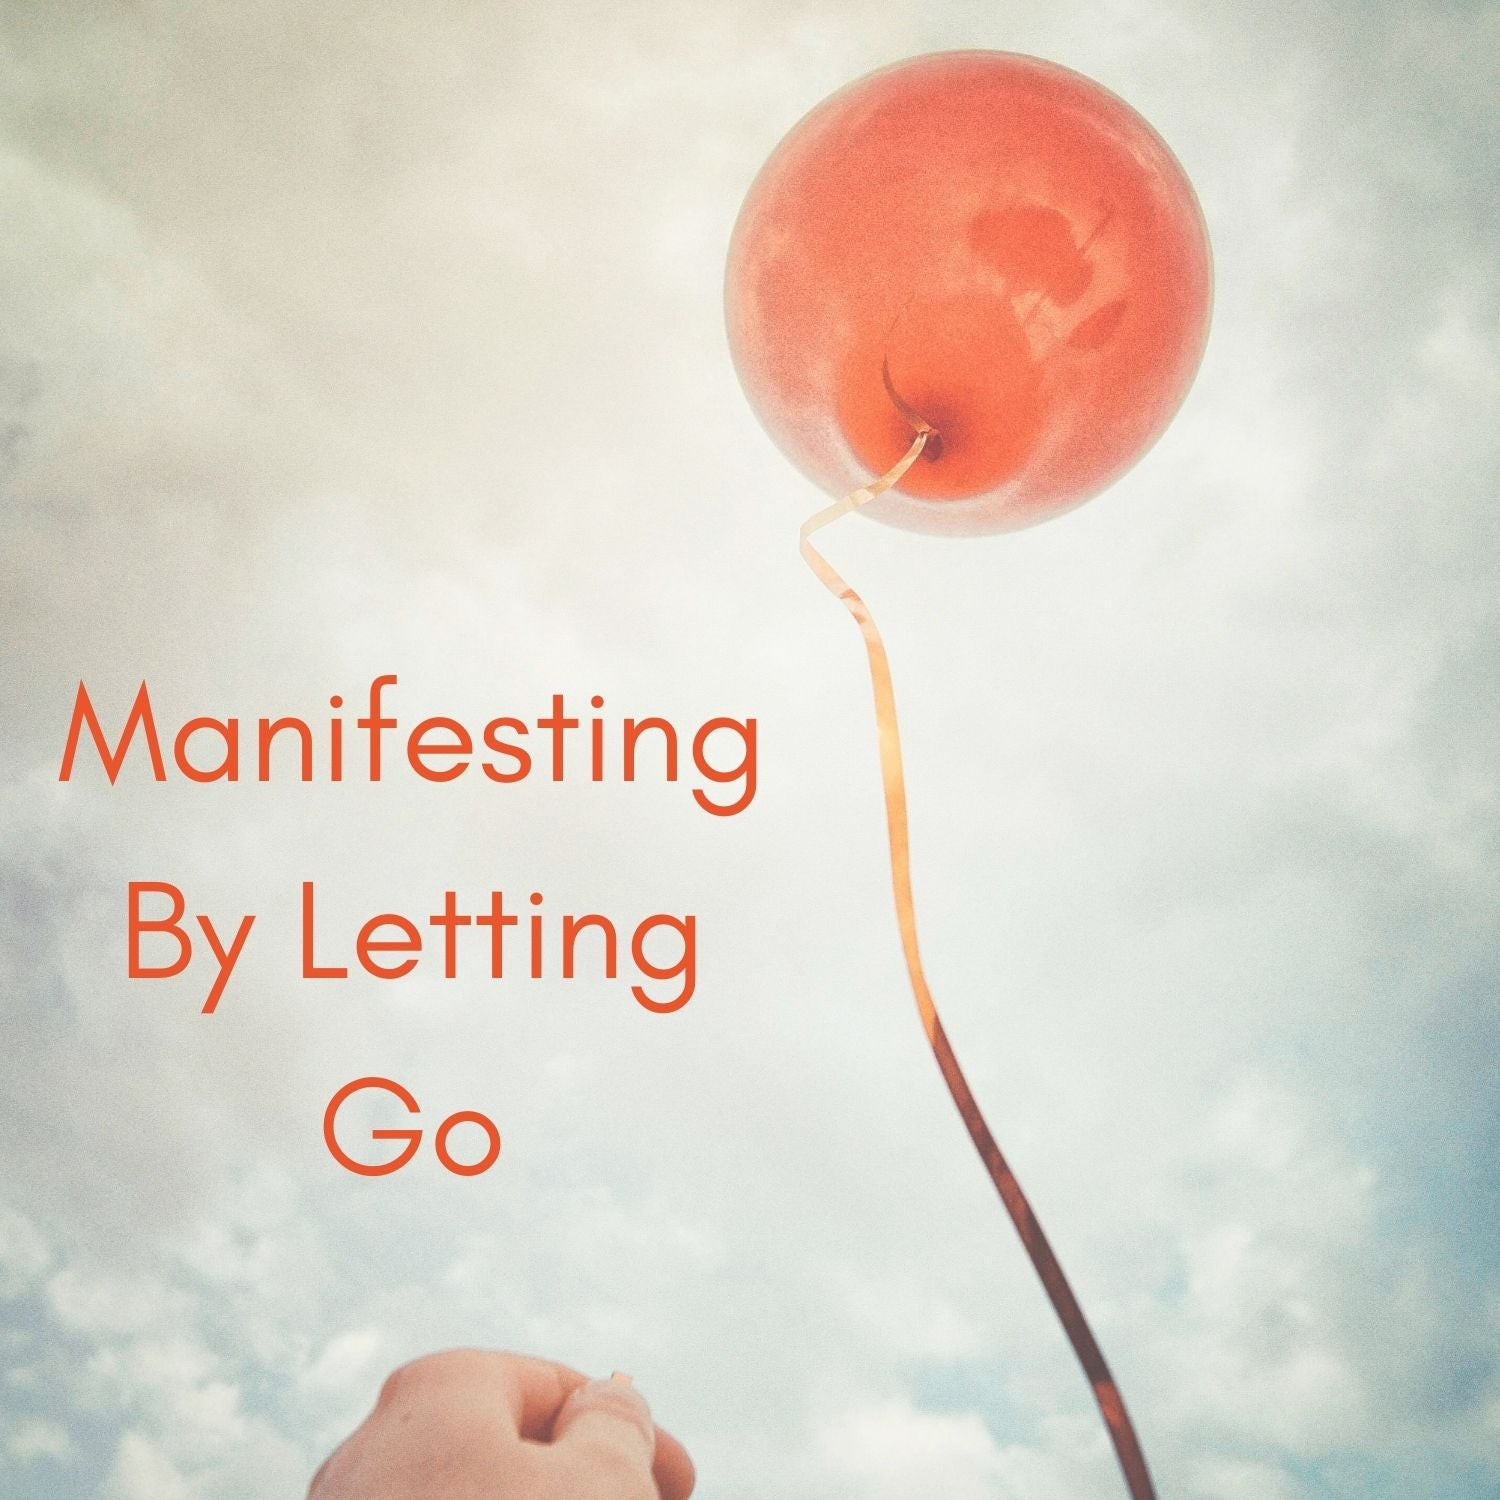 Manifesting By Letting Go